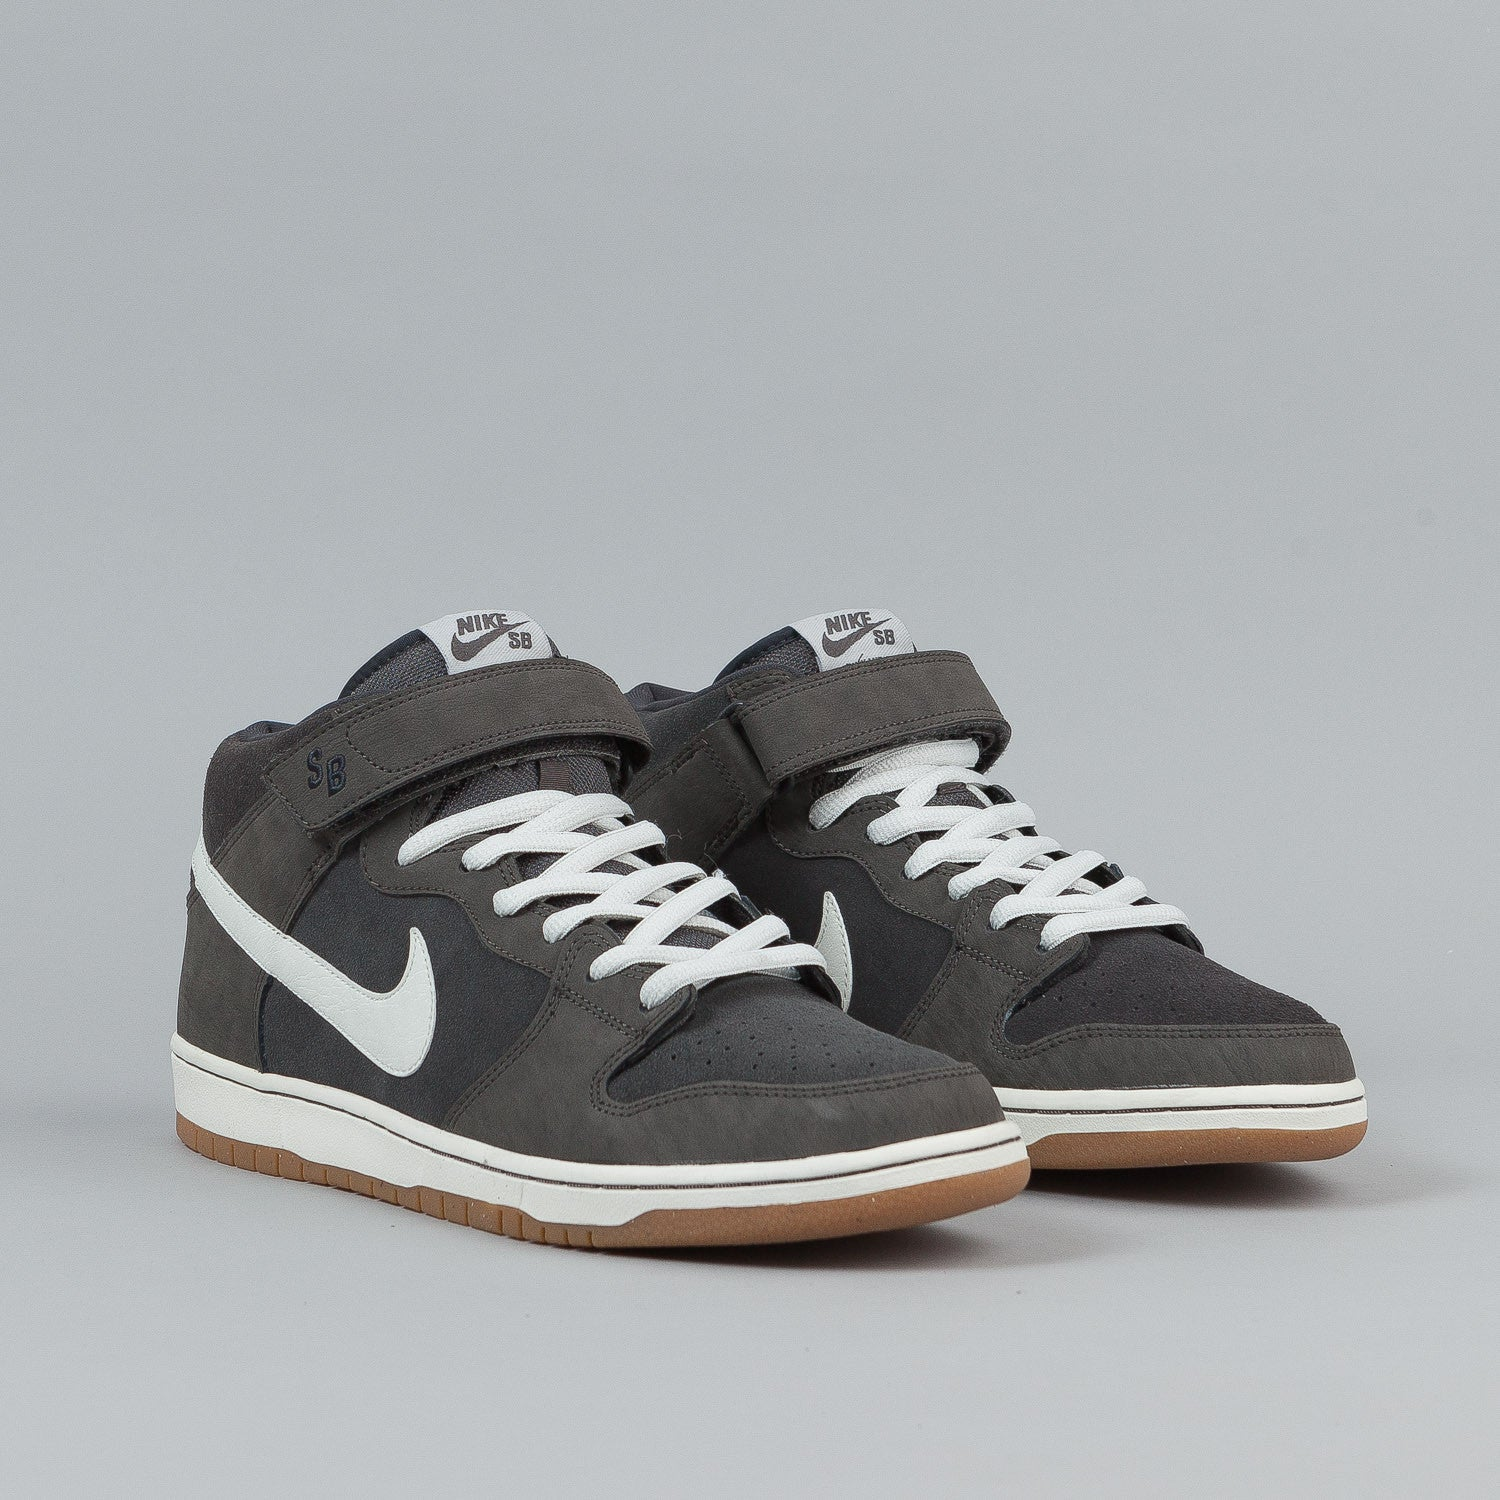 Nike SB Dunk Mid Pro Shoes - Mid Fog / Metallic Summit White / Anthracite